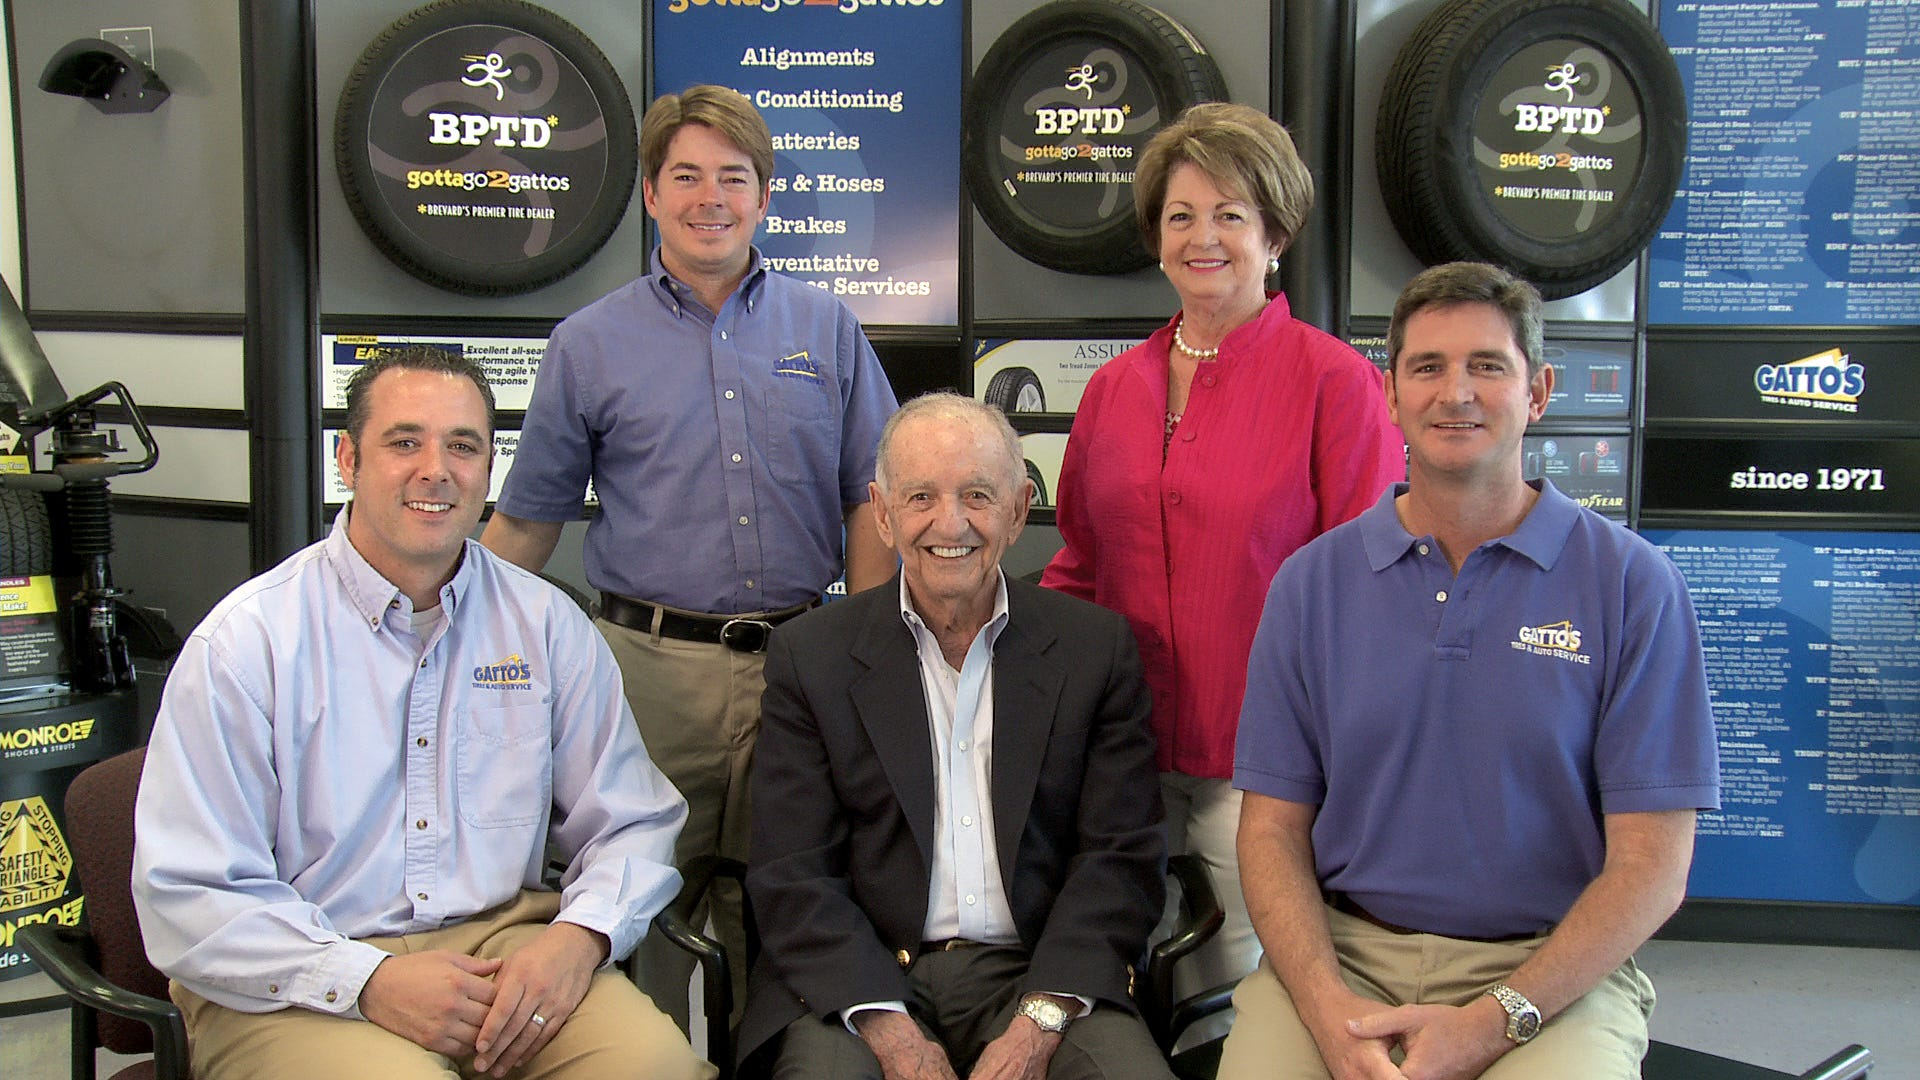 2e4f7b69-b964-4d20-9b6a-ed7a4ed48921-Gatto-Family Gatto Tire and Auto founder Mike Gatto dies at 93